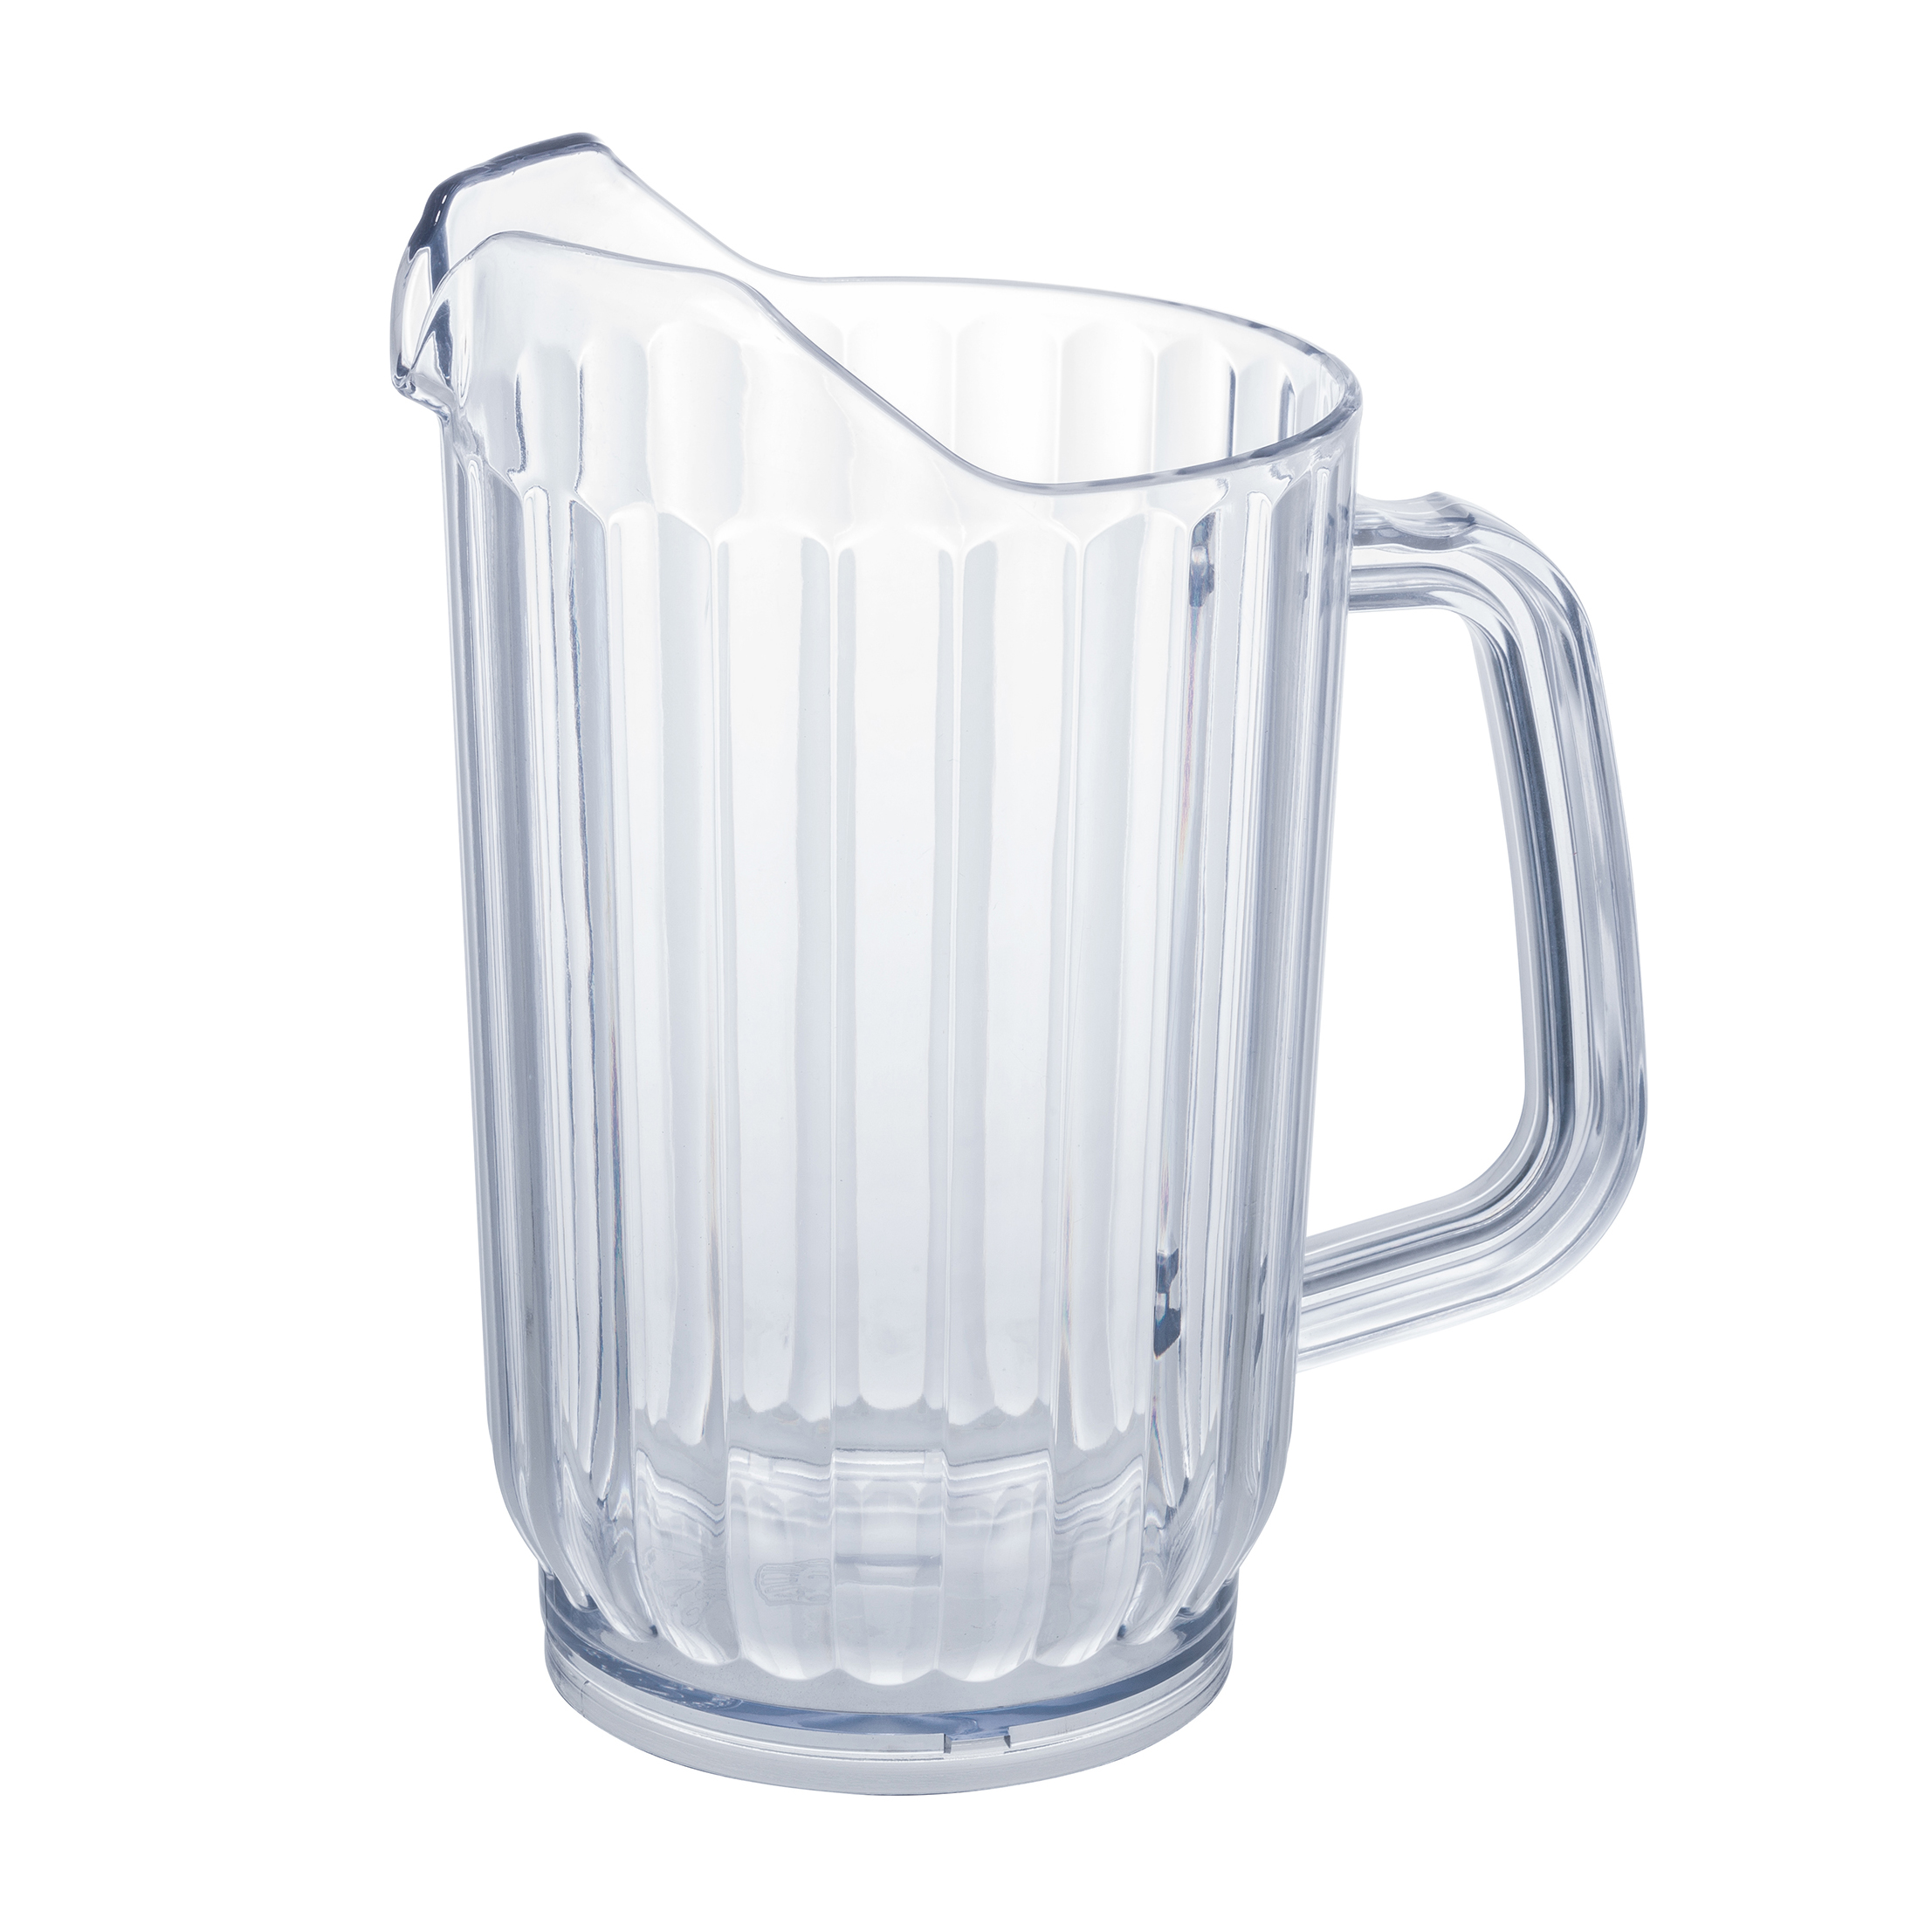 Winco WPS-32 pitcher, plastic